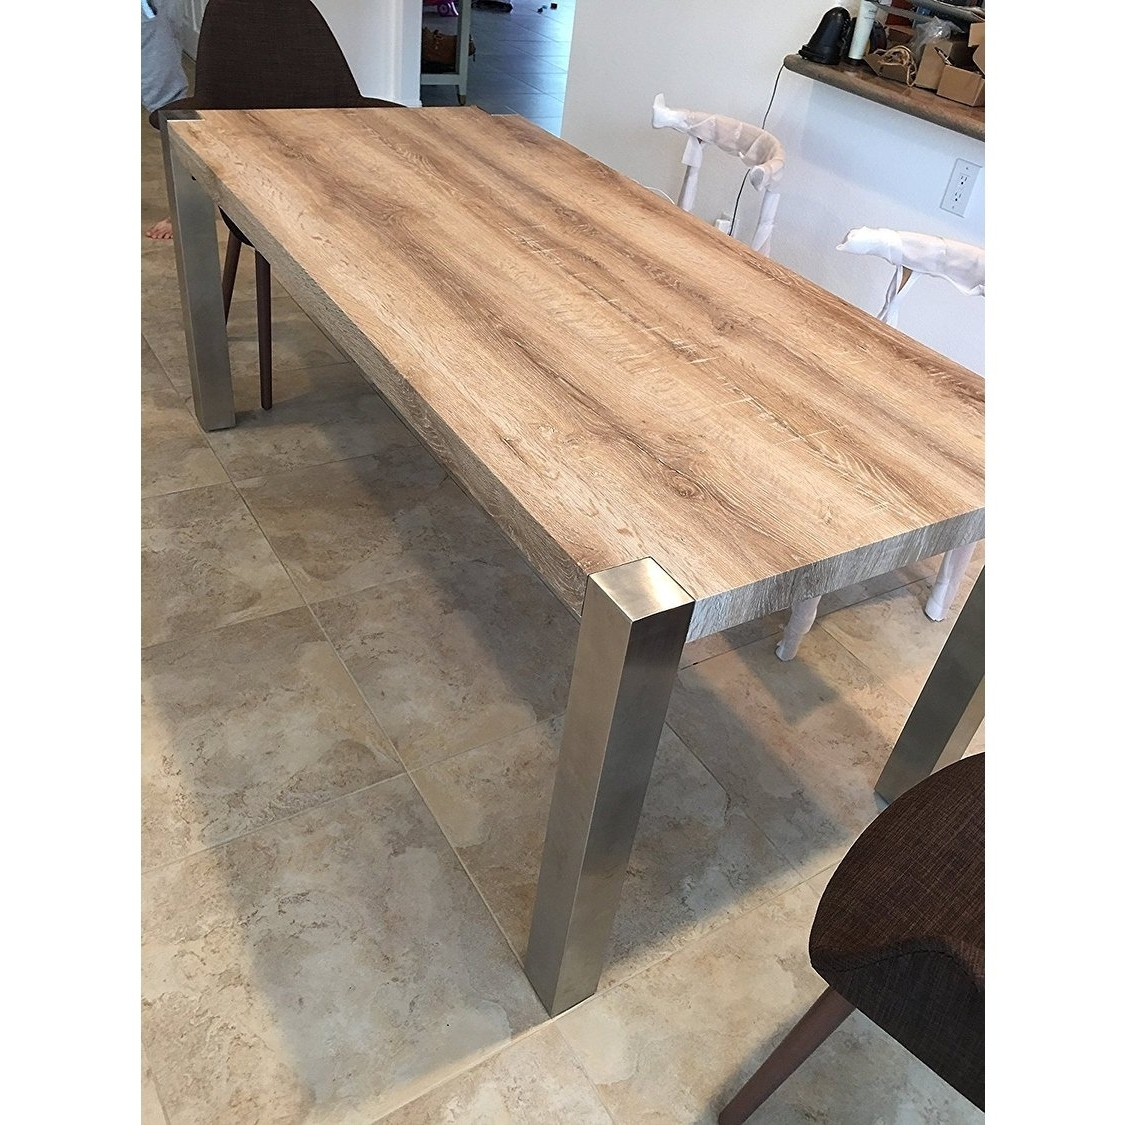 Dining Tables With Metal Legs Wood Top Pertaining To Most Recent Shop 2Xhome – Modern Designer Wood Top Dining Table With Metal Legs (Gallery 1 of 25)